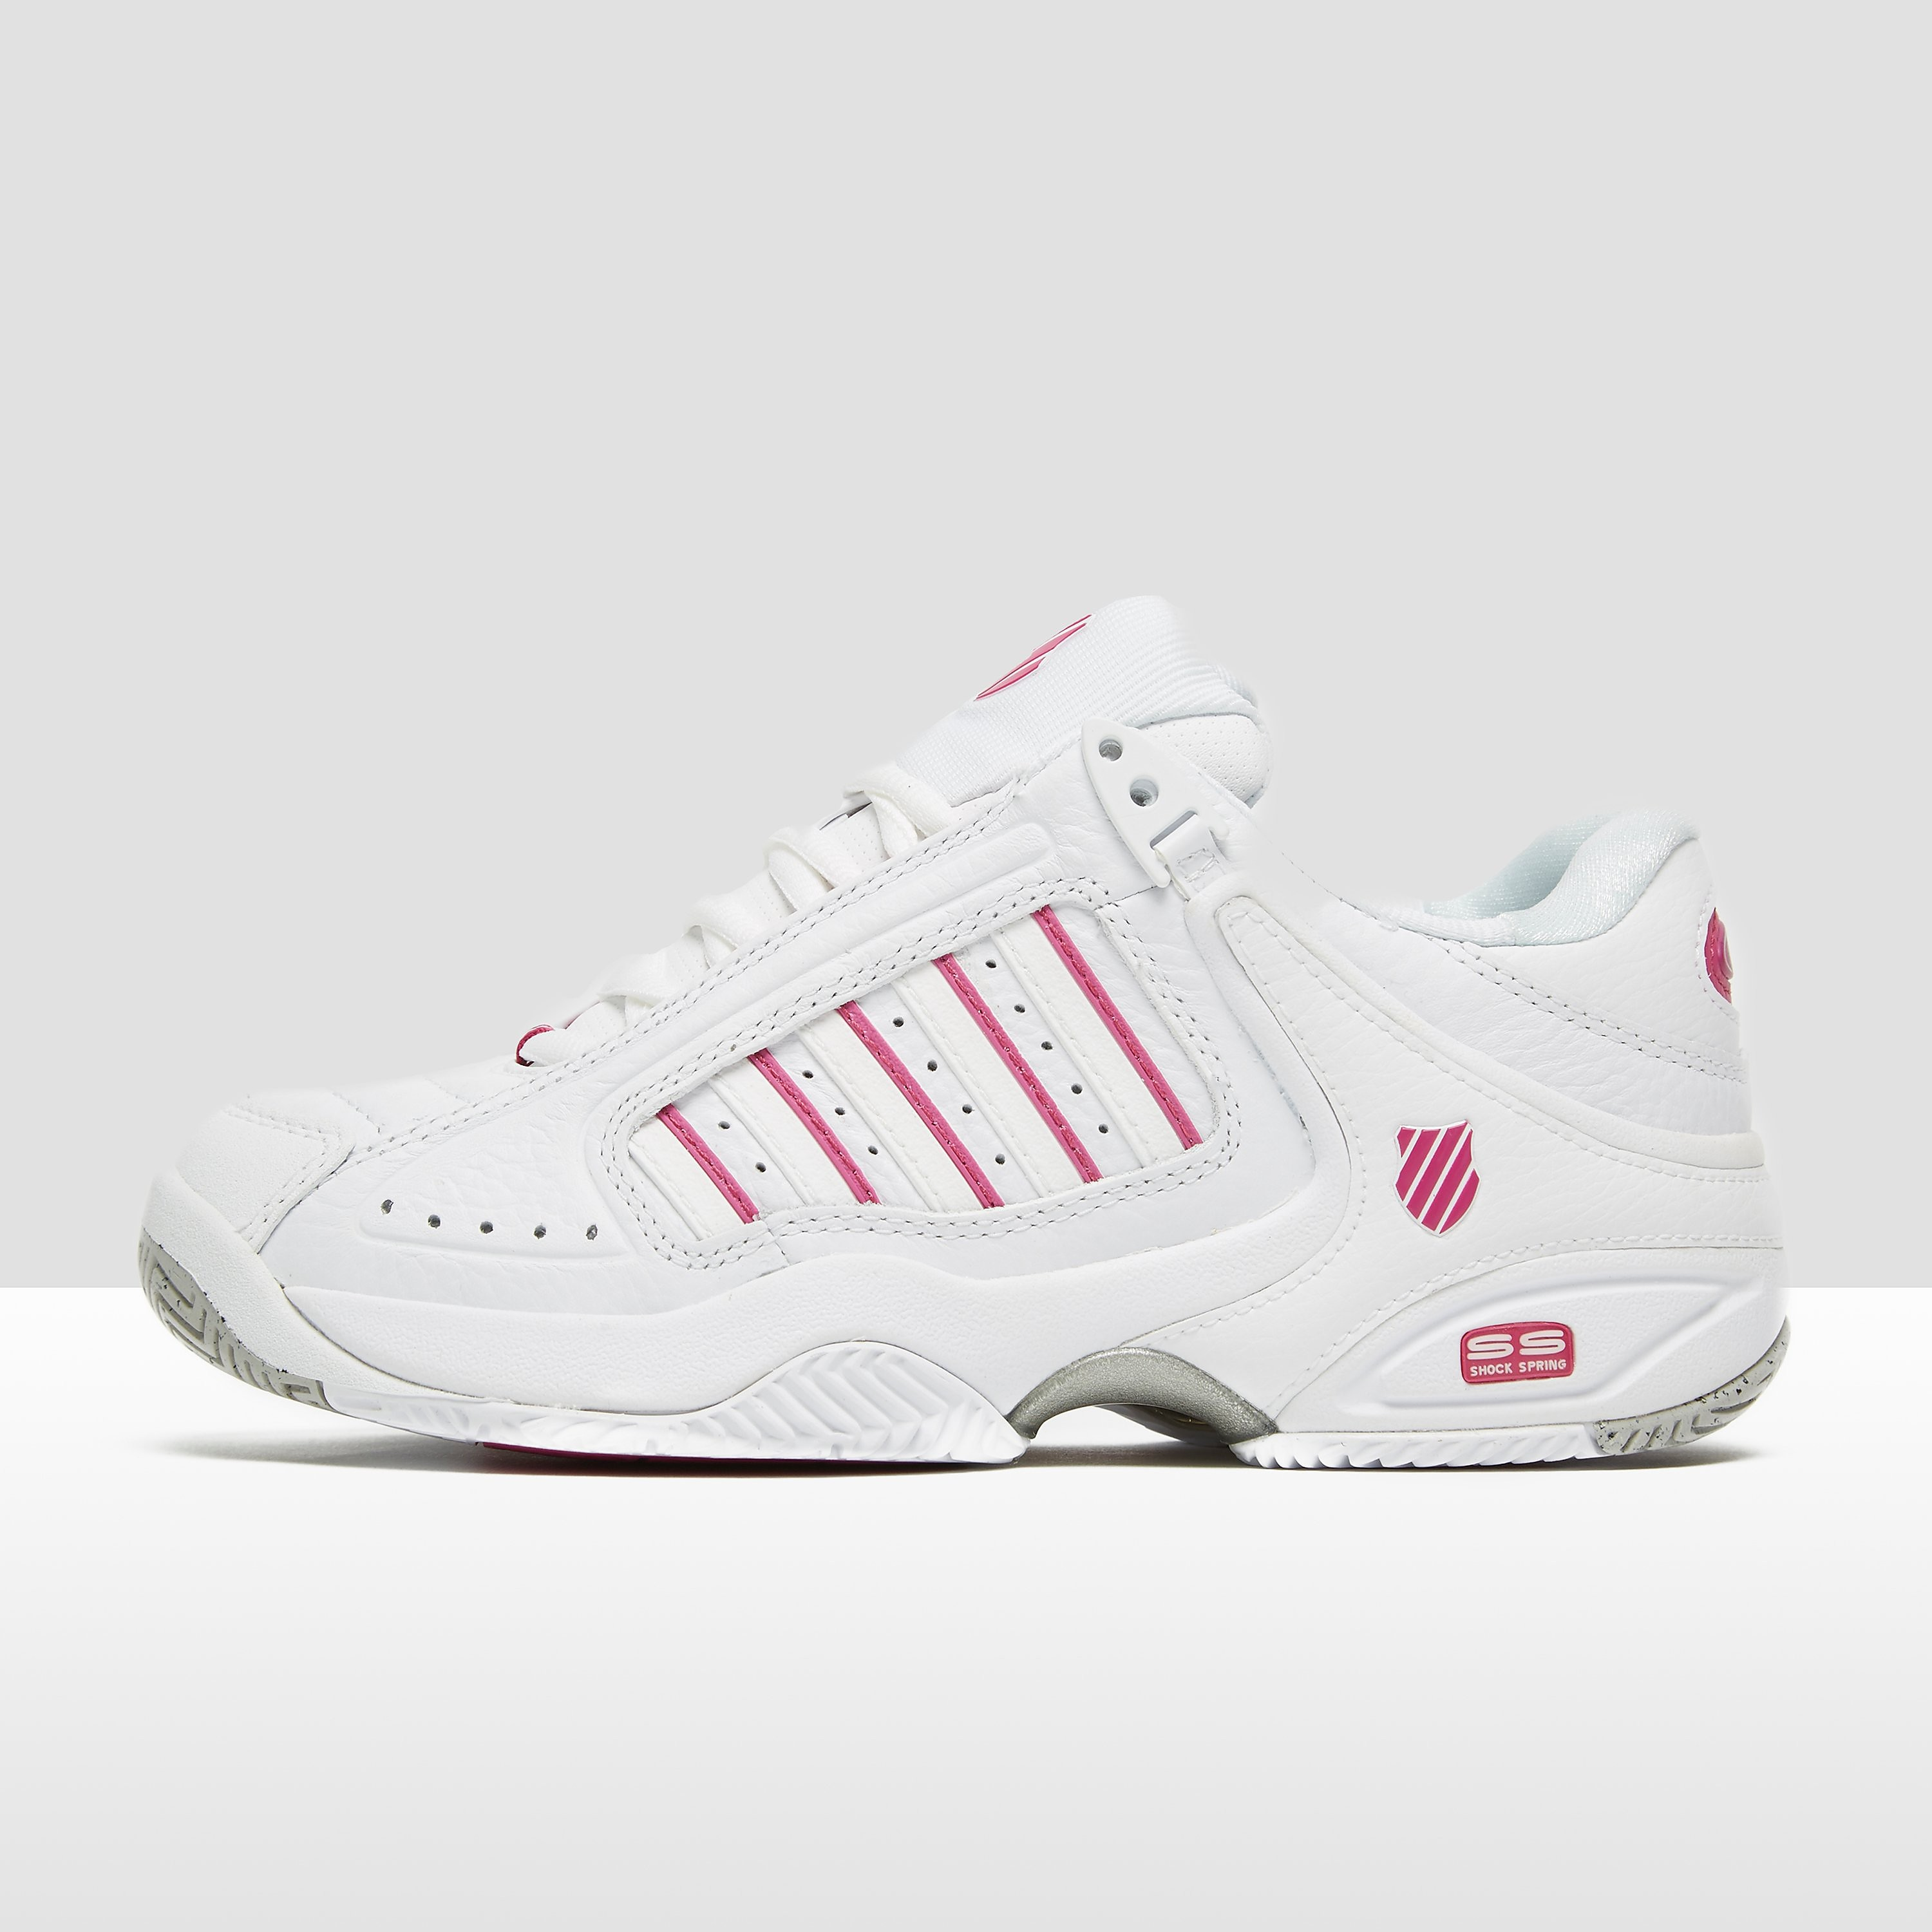 K-Swiss Defier RS Women's Tennis Shoes